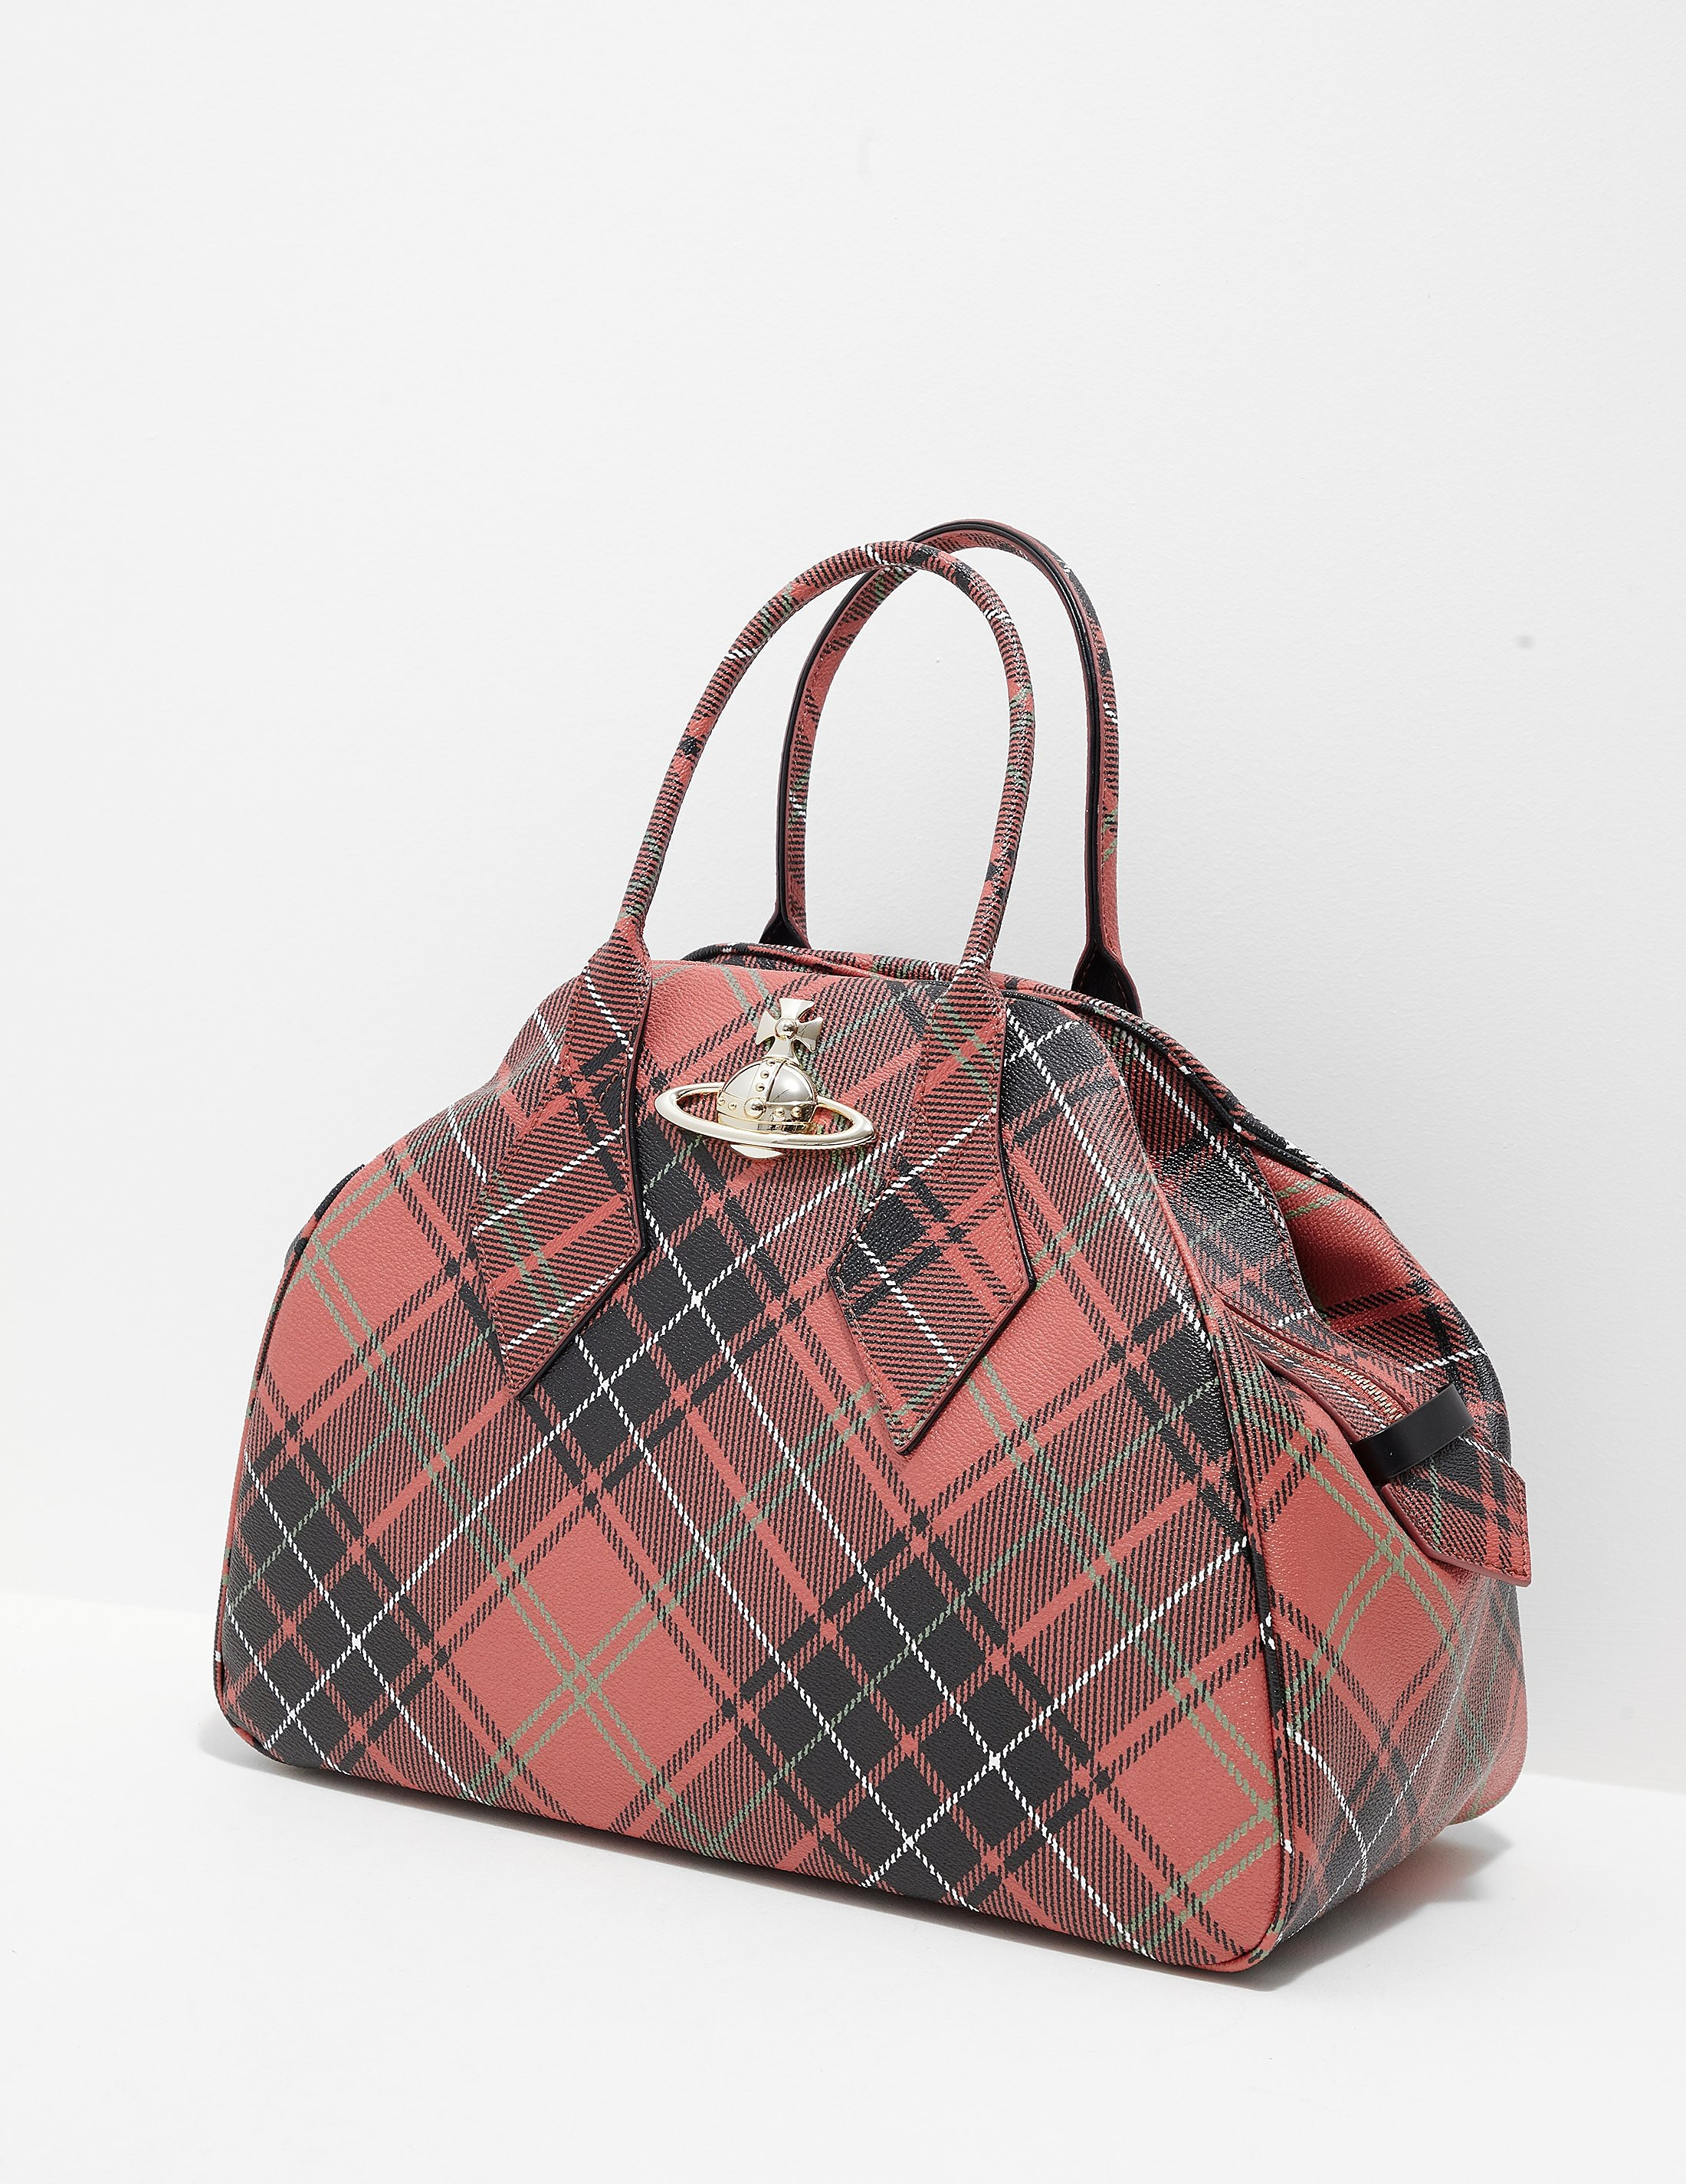 Vivienne Westwood Derby Large Dome Bag